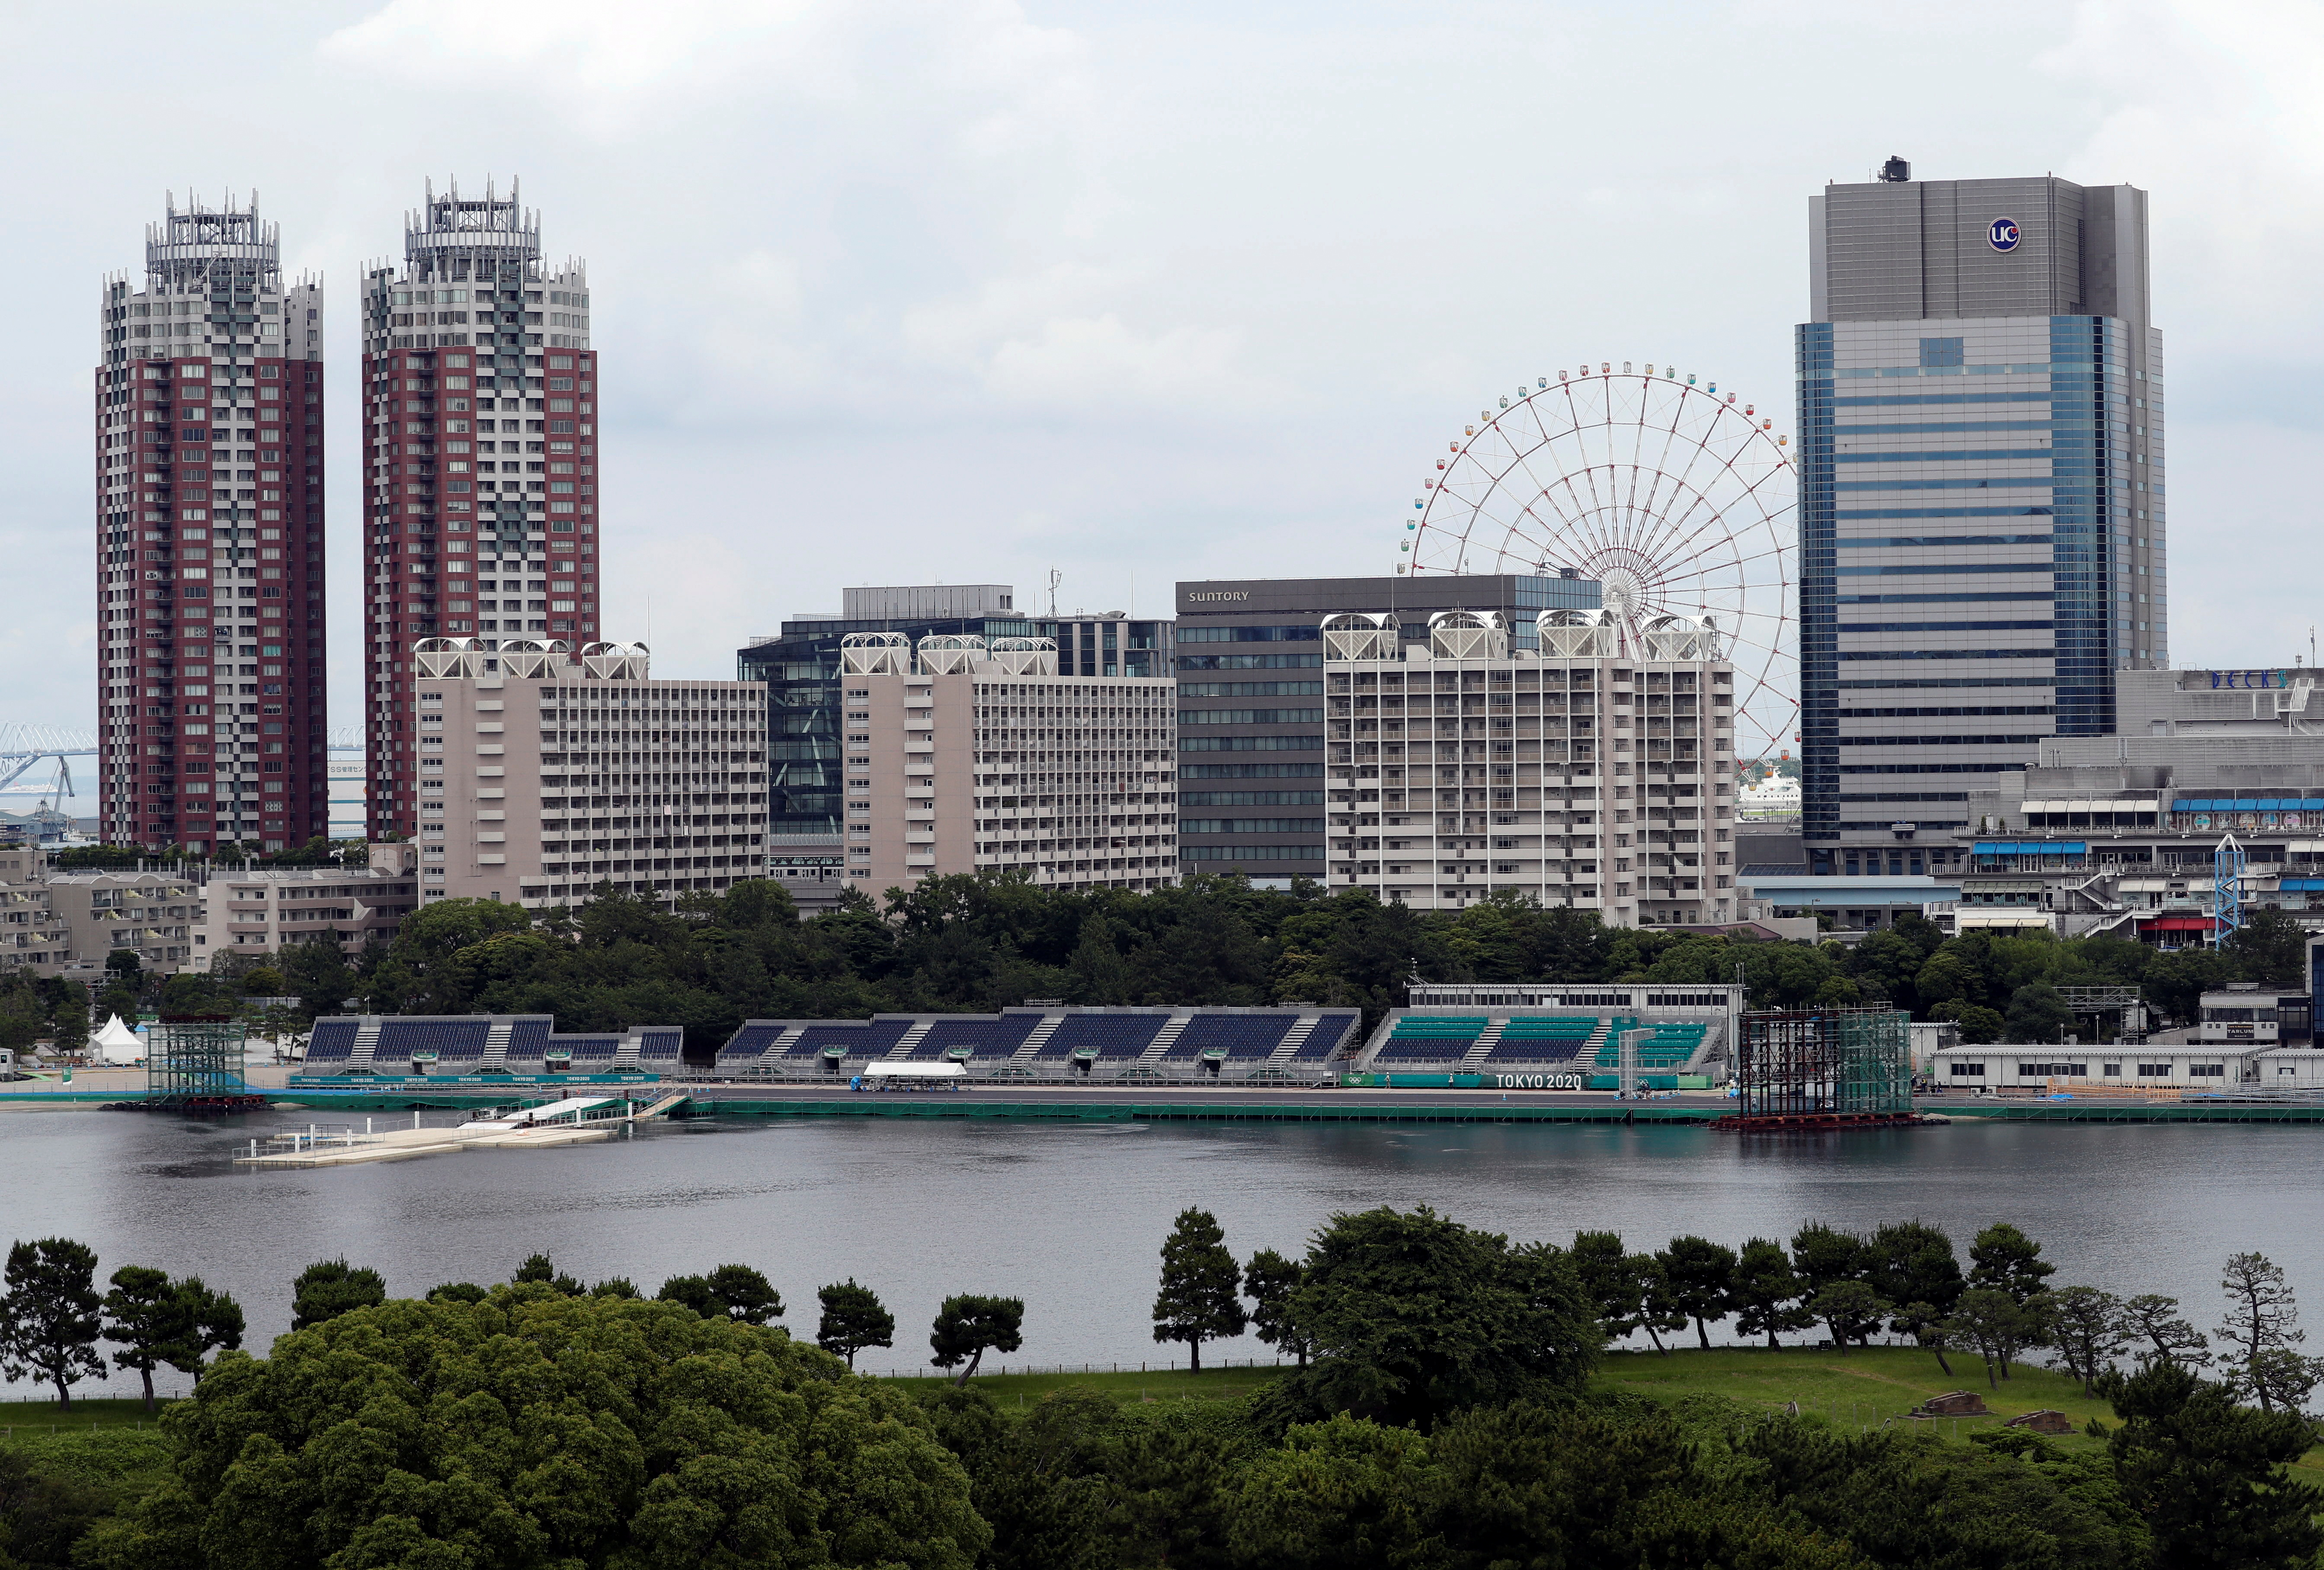 A general view shows Odaiba Marine Park, the venue for Marathon Swimming and Triathlon events during the Tokyo 2020 Olympic Games that have been postponed to 2021 due to the coronavirus disease (COVID-19) outbreak, in Tokyo, Japan June 22, 2021.  REUTERS/Issei Kato